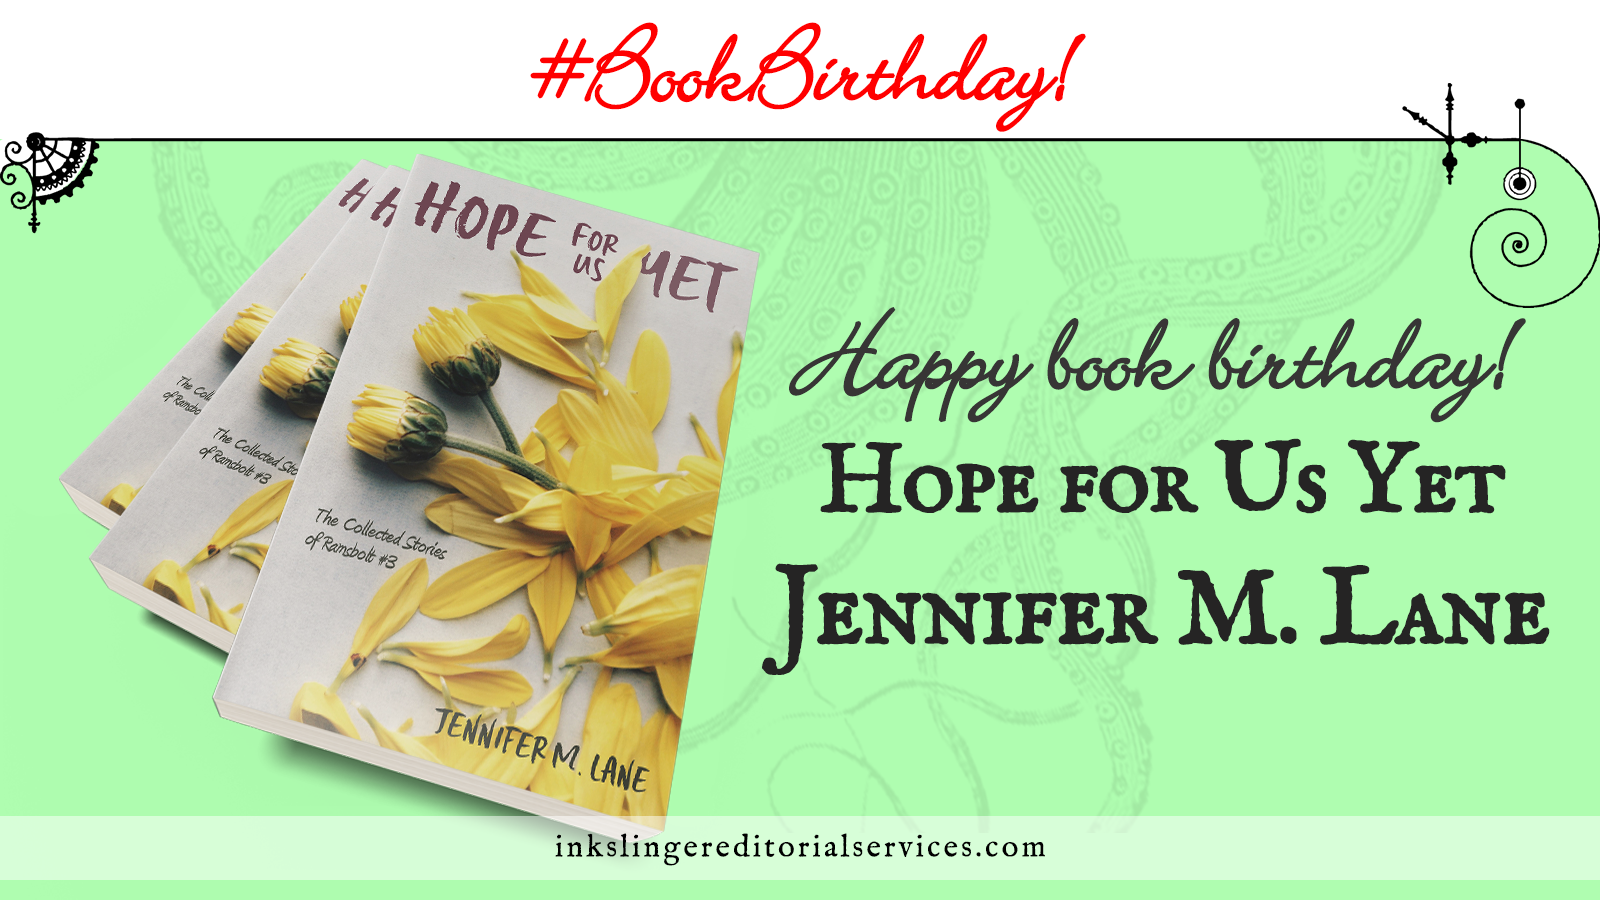 #BookBirthday A 3-book stack of Hope for US Yet over a mint green field. Happy book birthday! Hope for us Yet by Jennifer M. Lane.